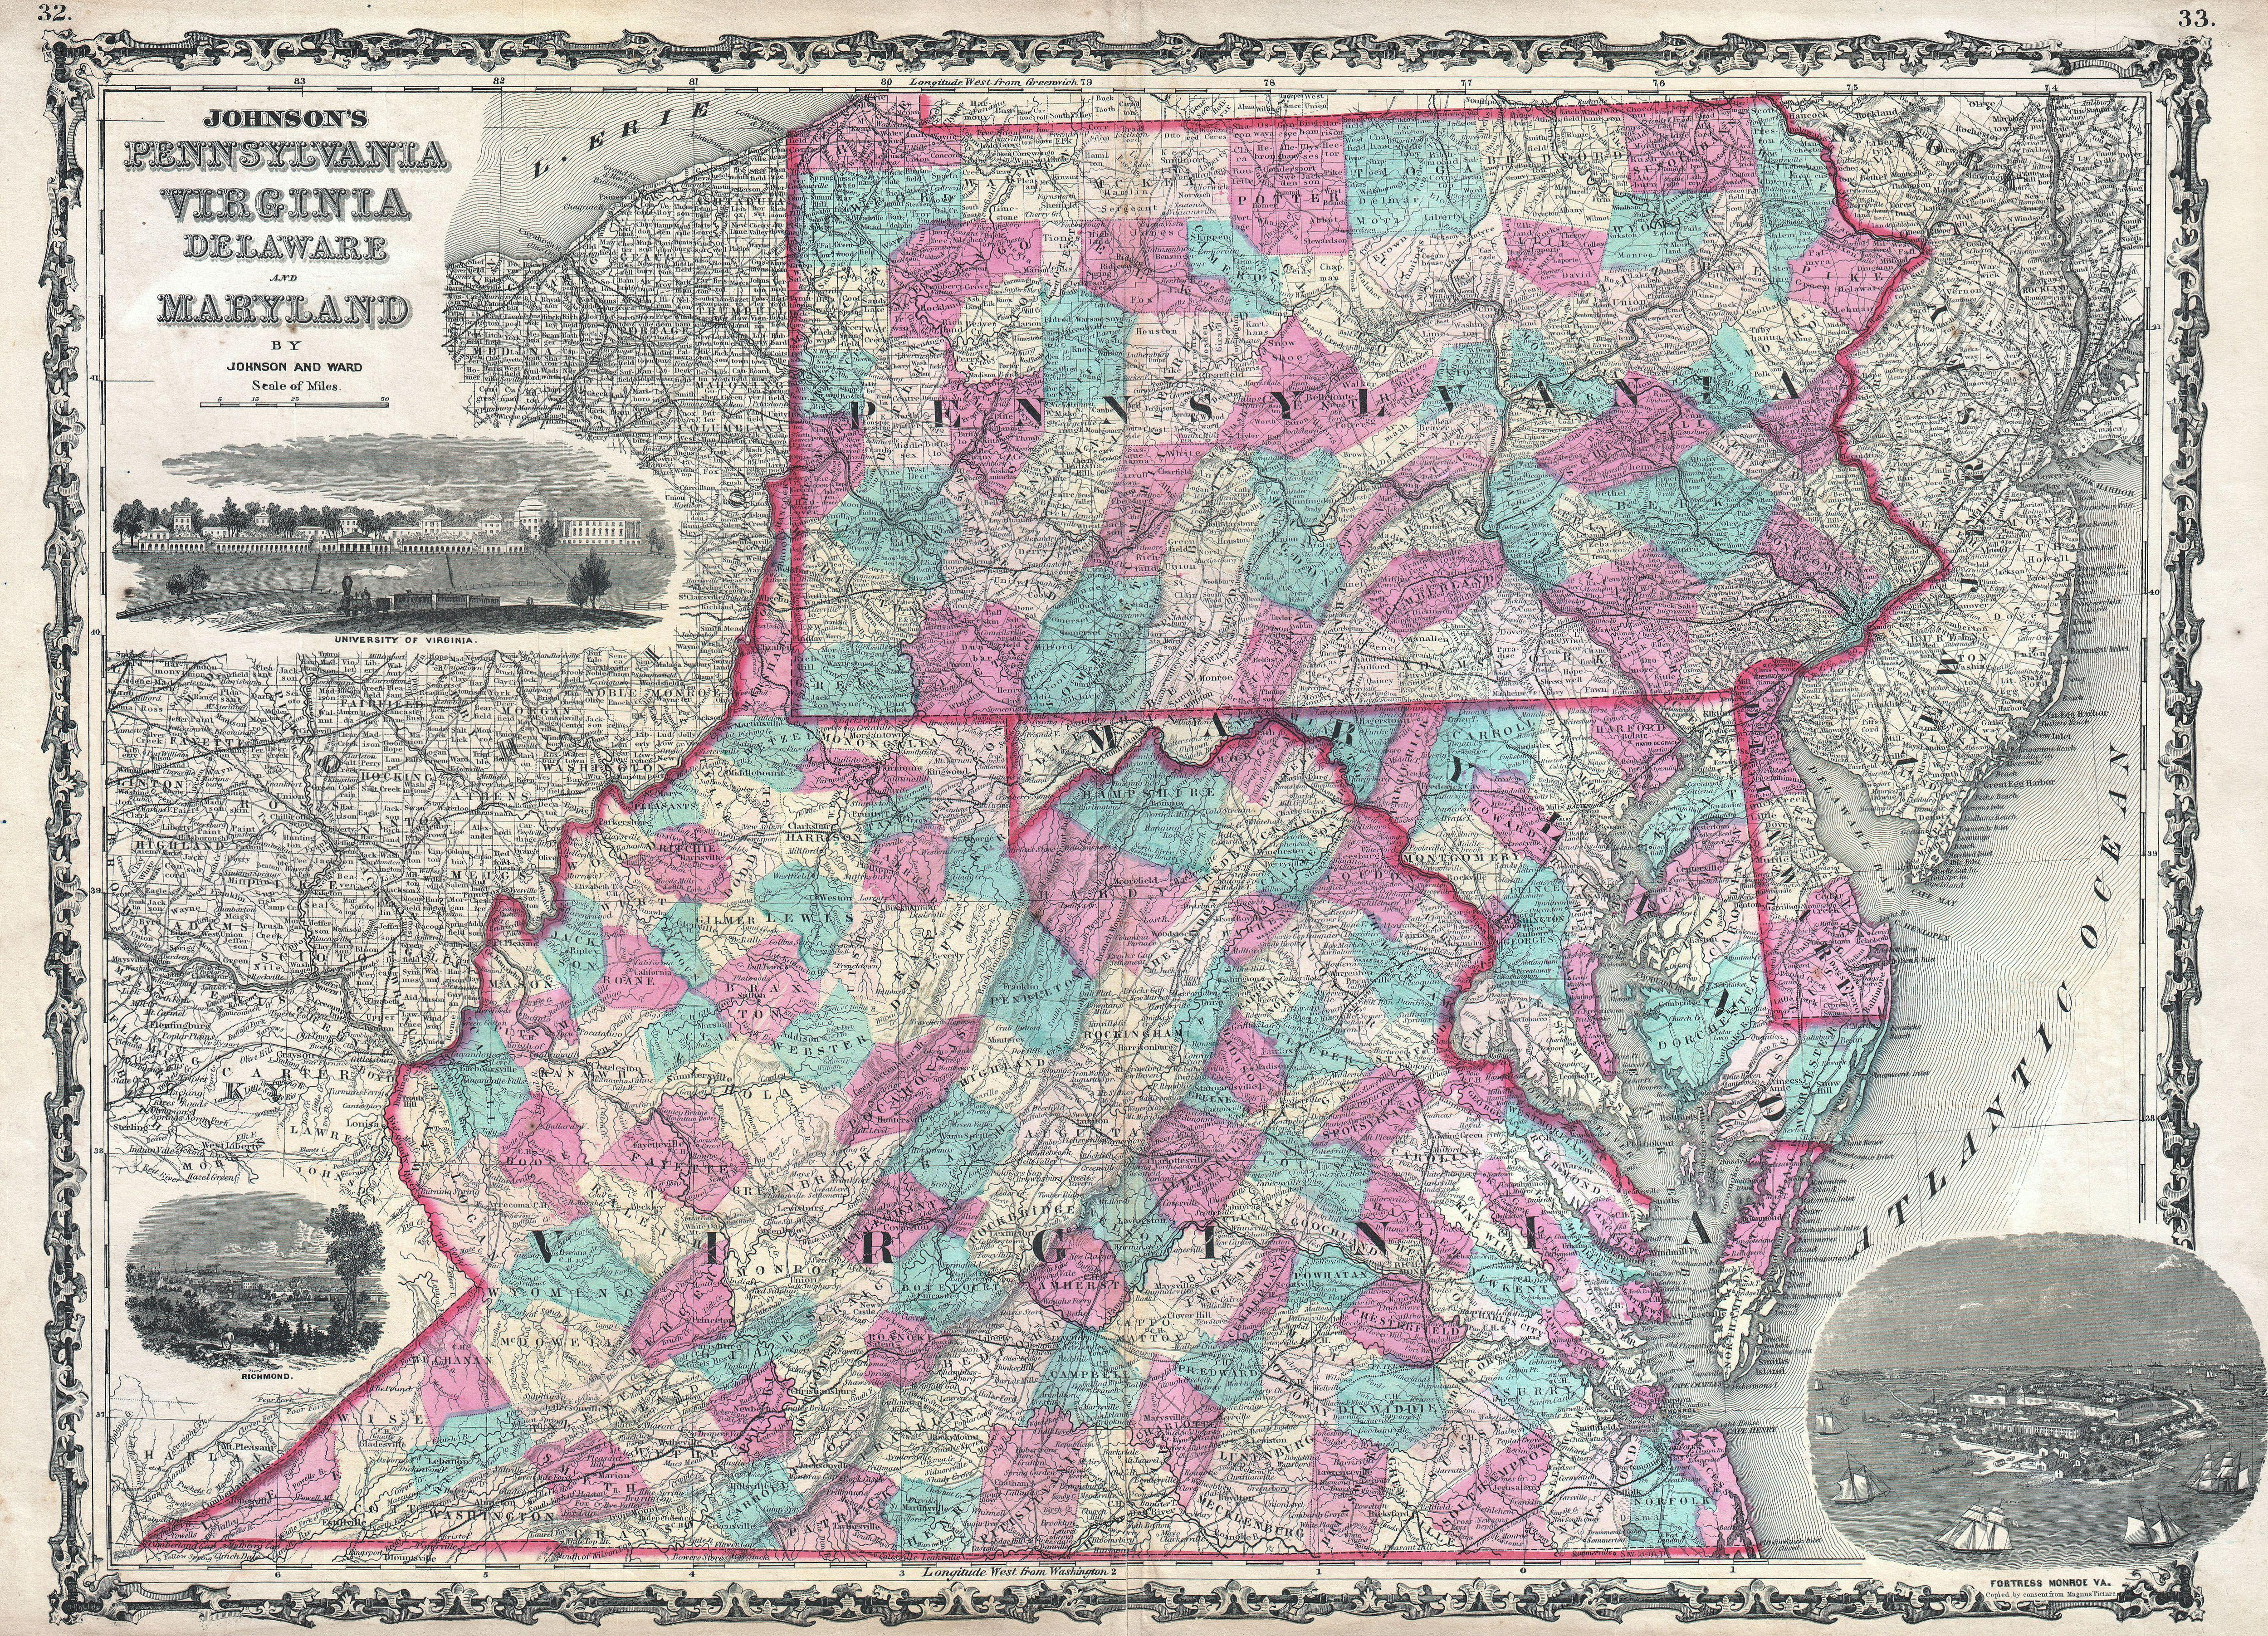 Worksheet. Virginia in 1862 before West Virginia separated and became a